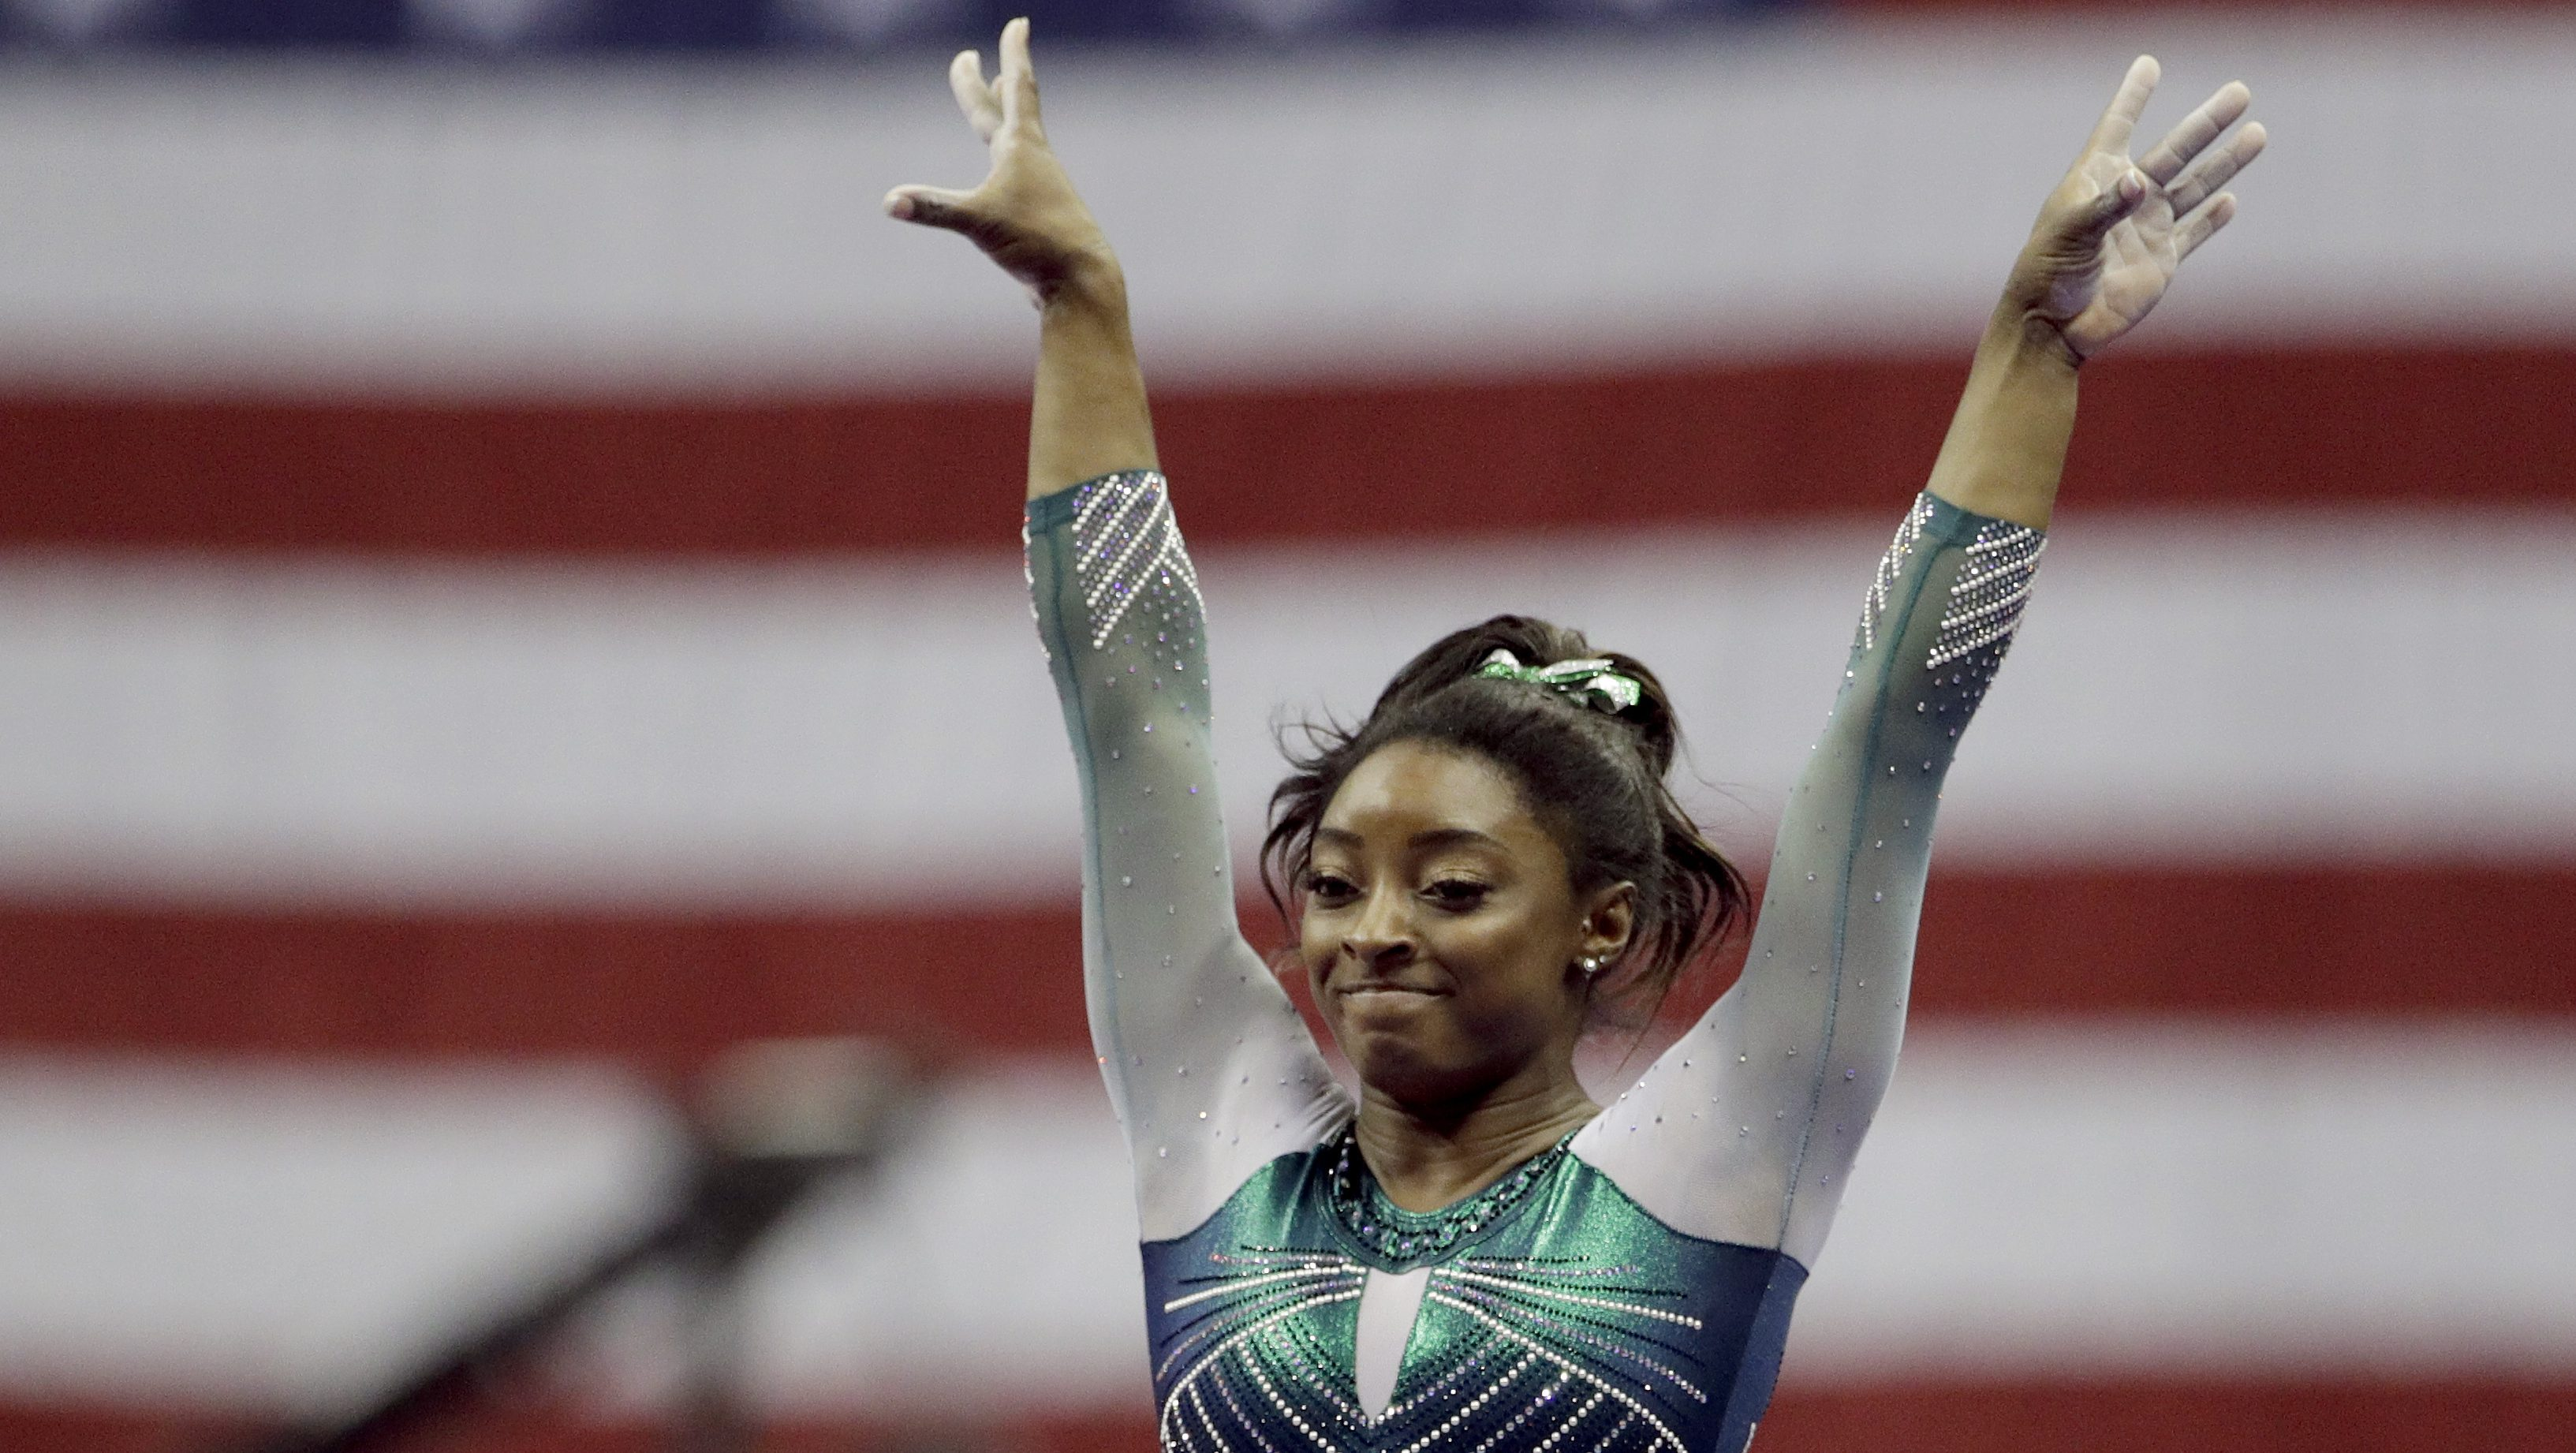 Simone Biles' road to GOAT status, sixth U.S. all-around title, and how it almost didn't happen